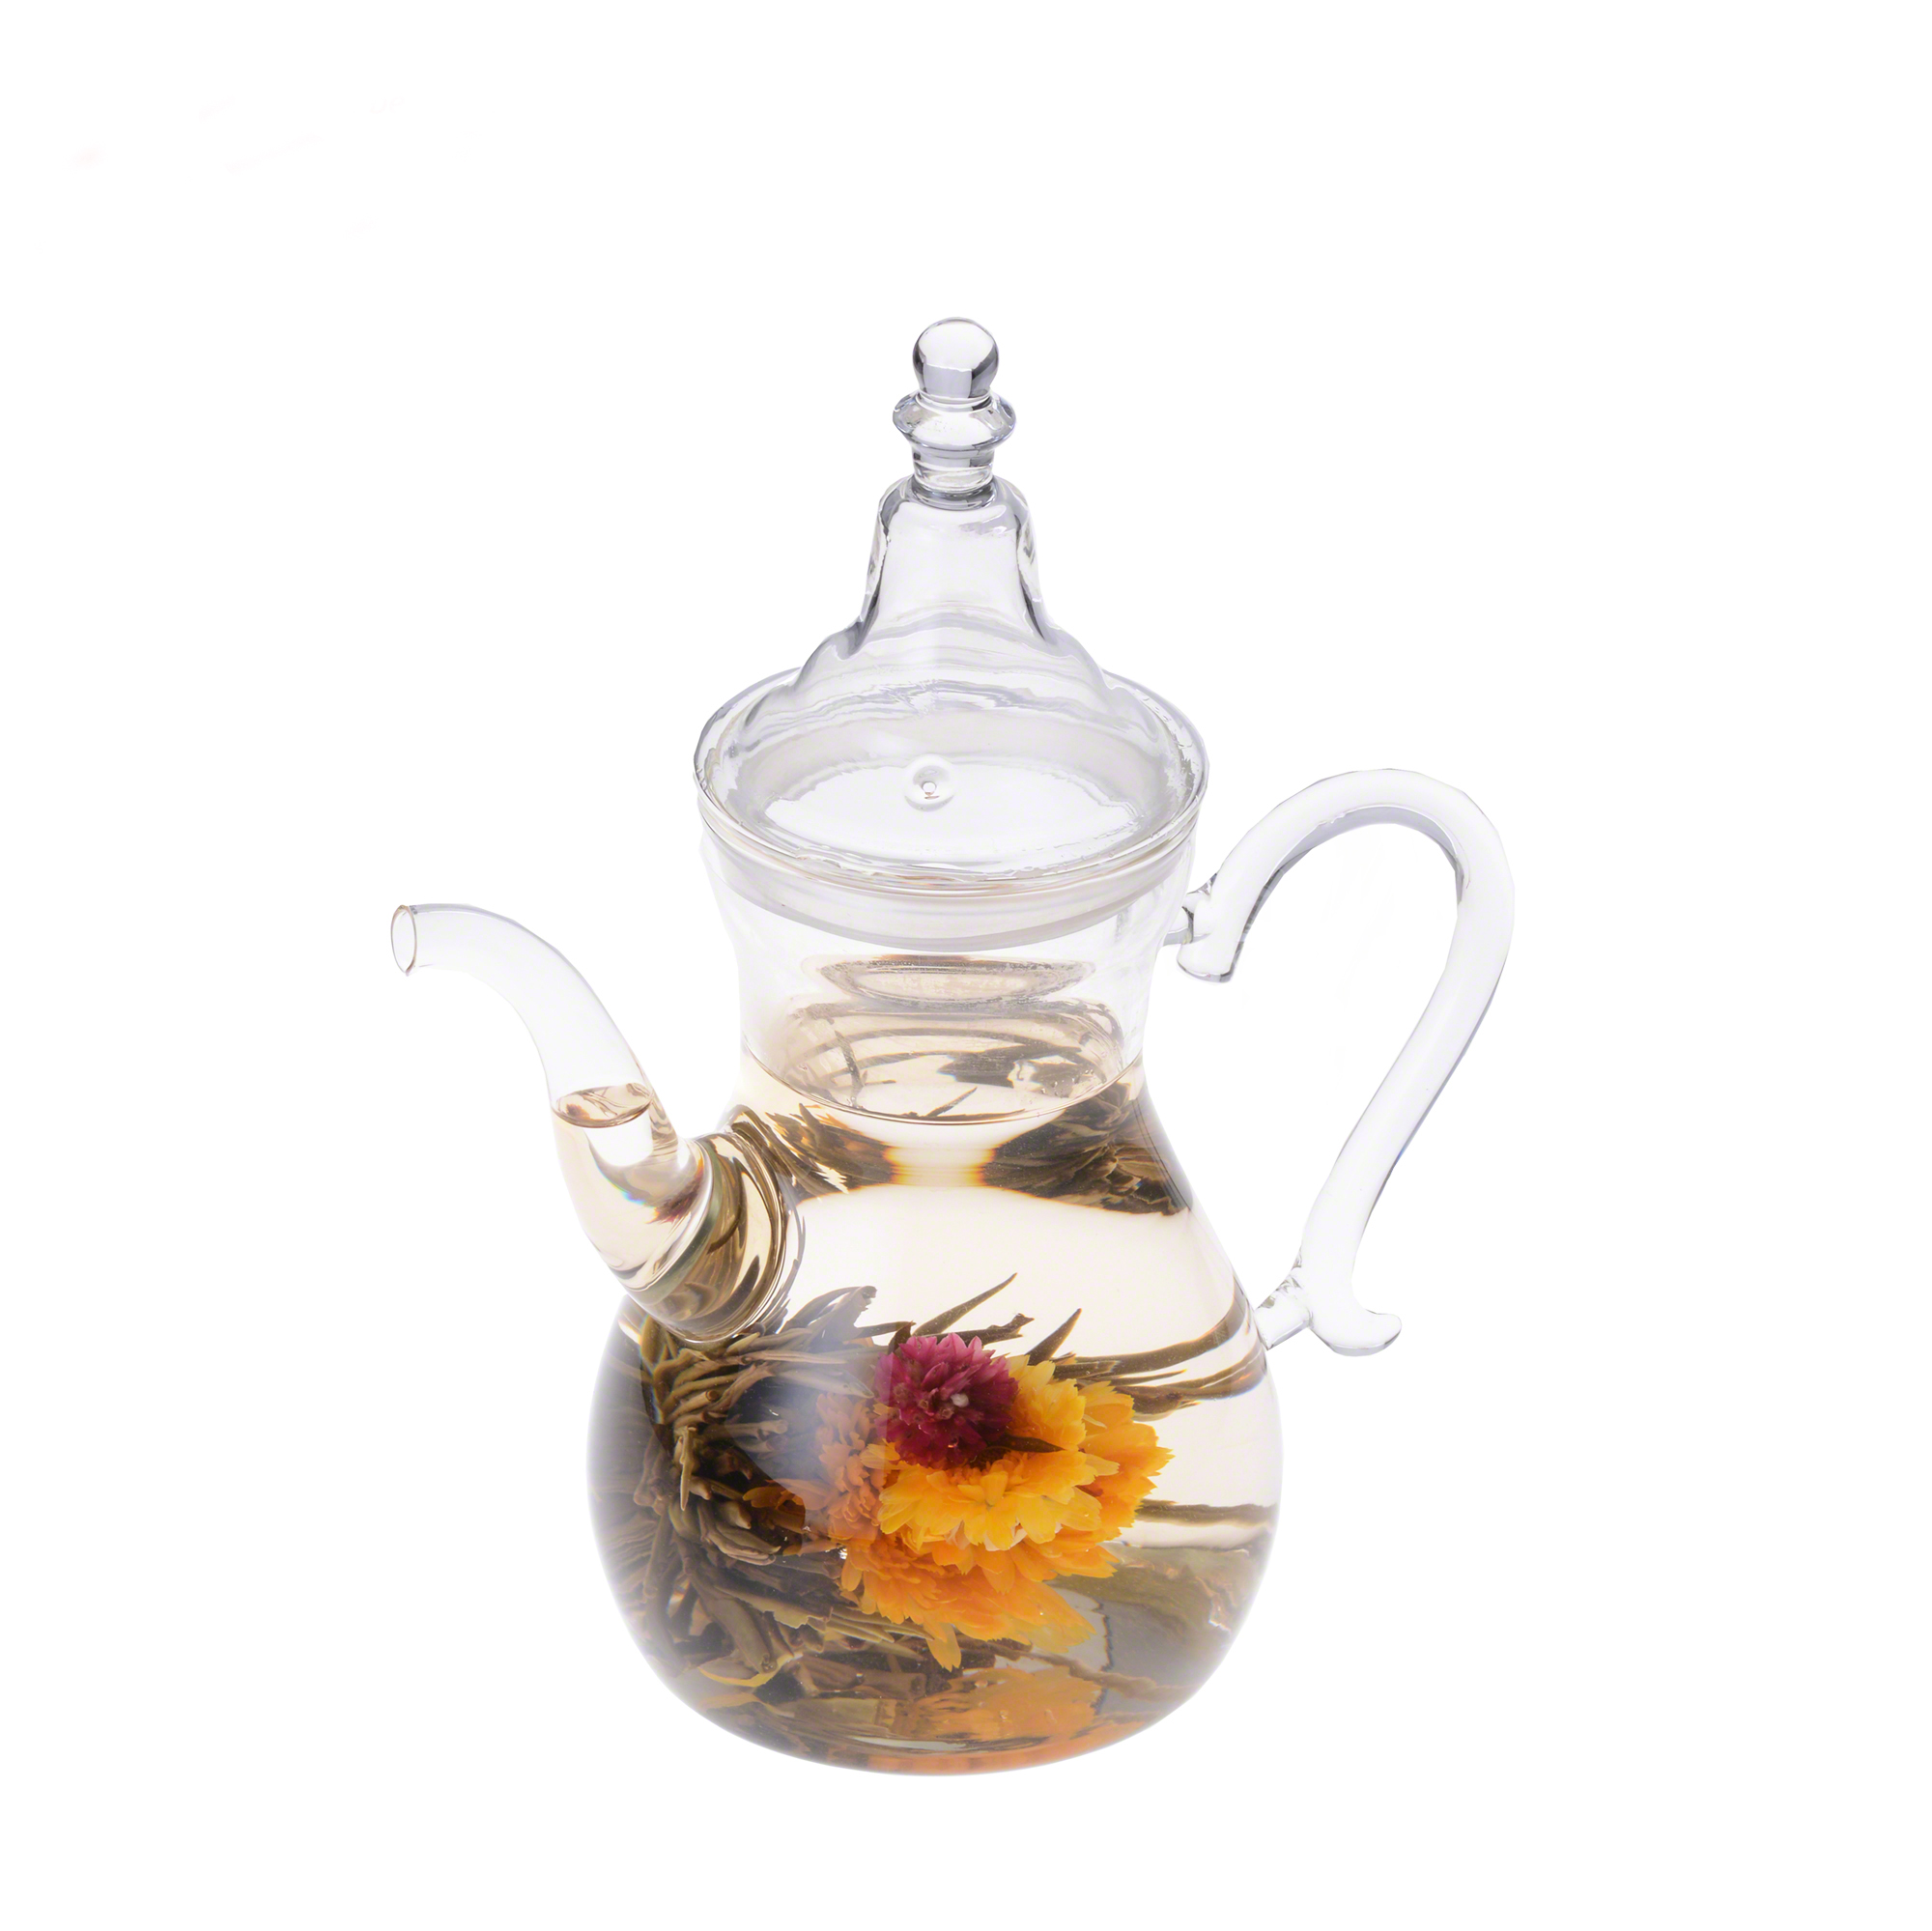 glass-teapot-with-infuser.jpg